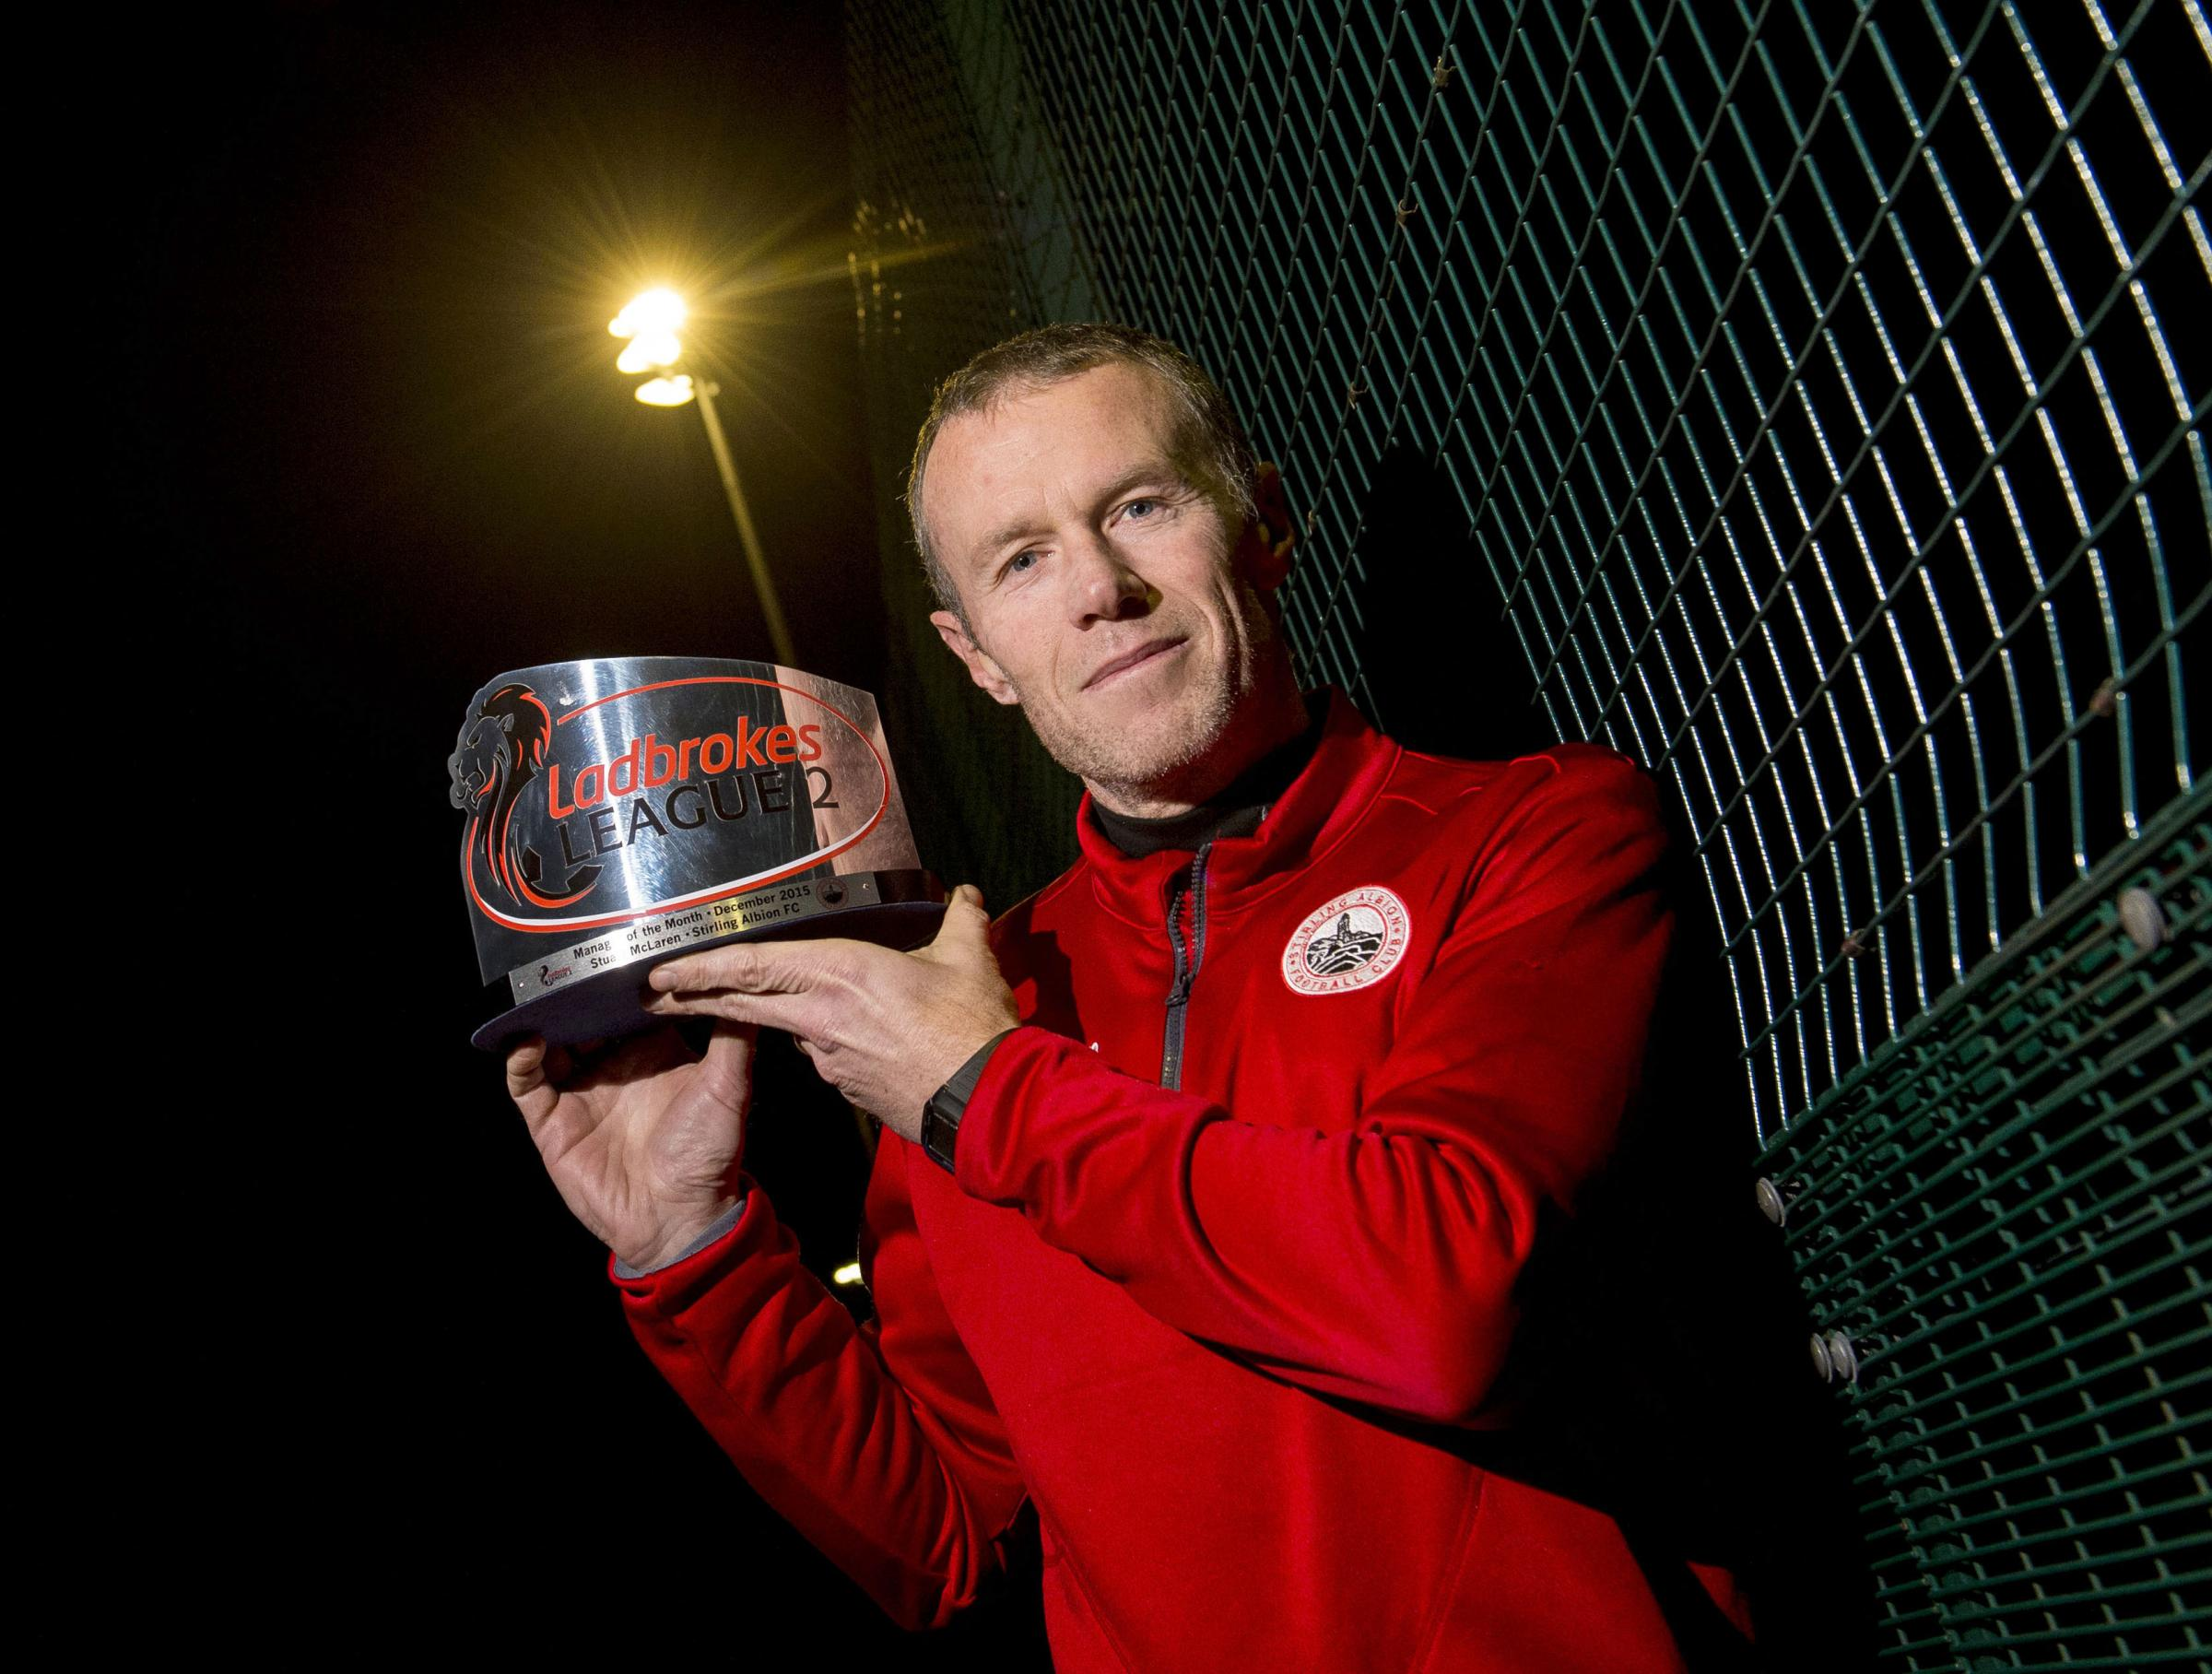 14/01/16  STIRLING ALBION  Stirling Albion manager Darren Smith is delighted to have been awarded Ladbrokes League Two manager the month for December